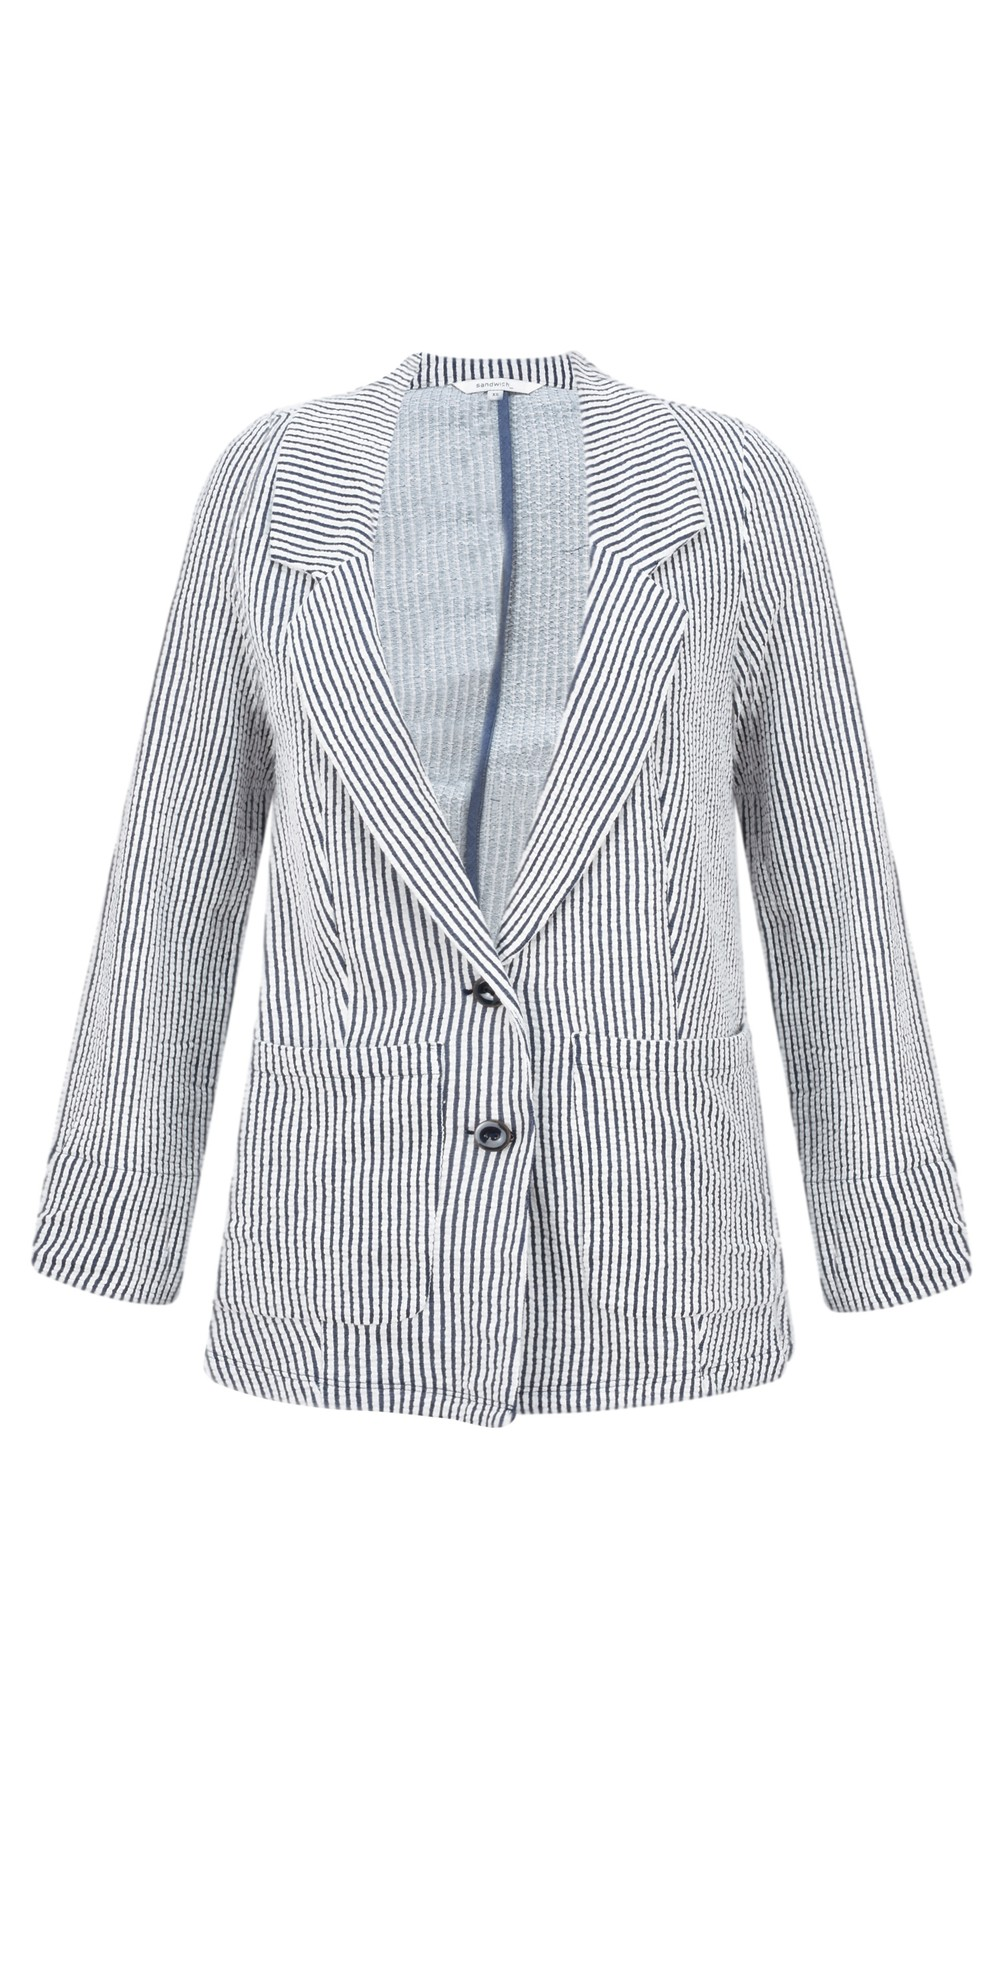 Seersucker Stripe Jacket main image